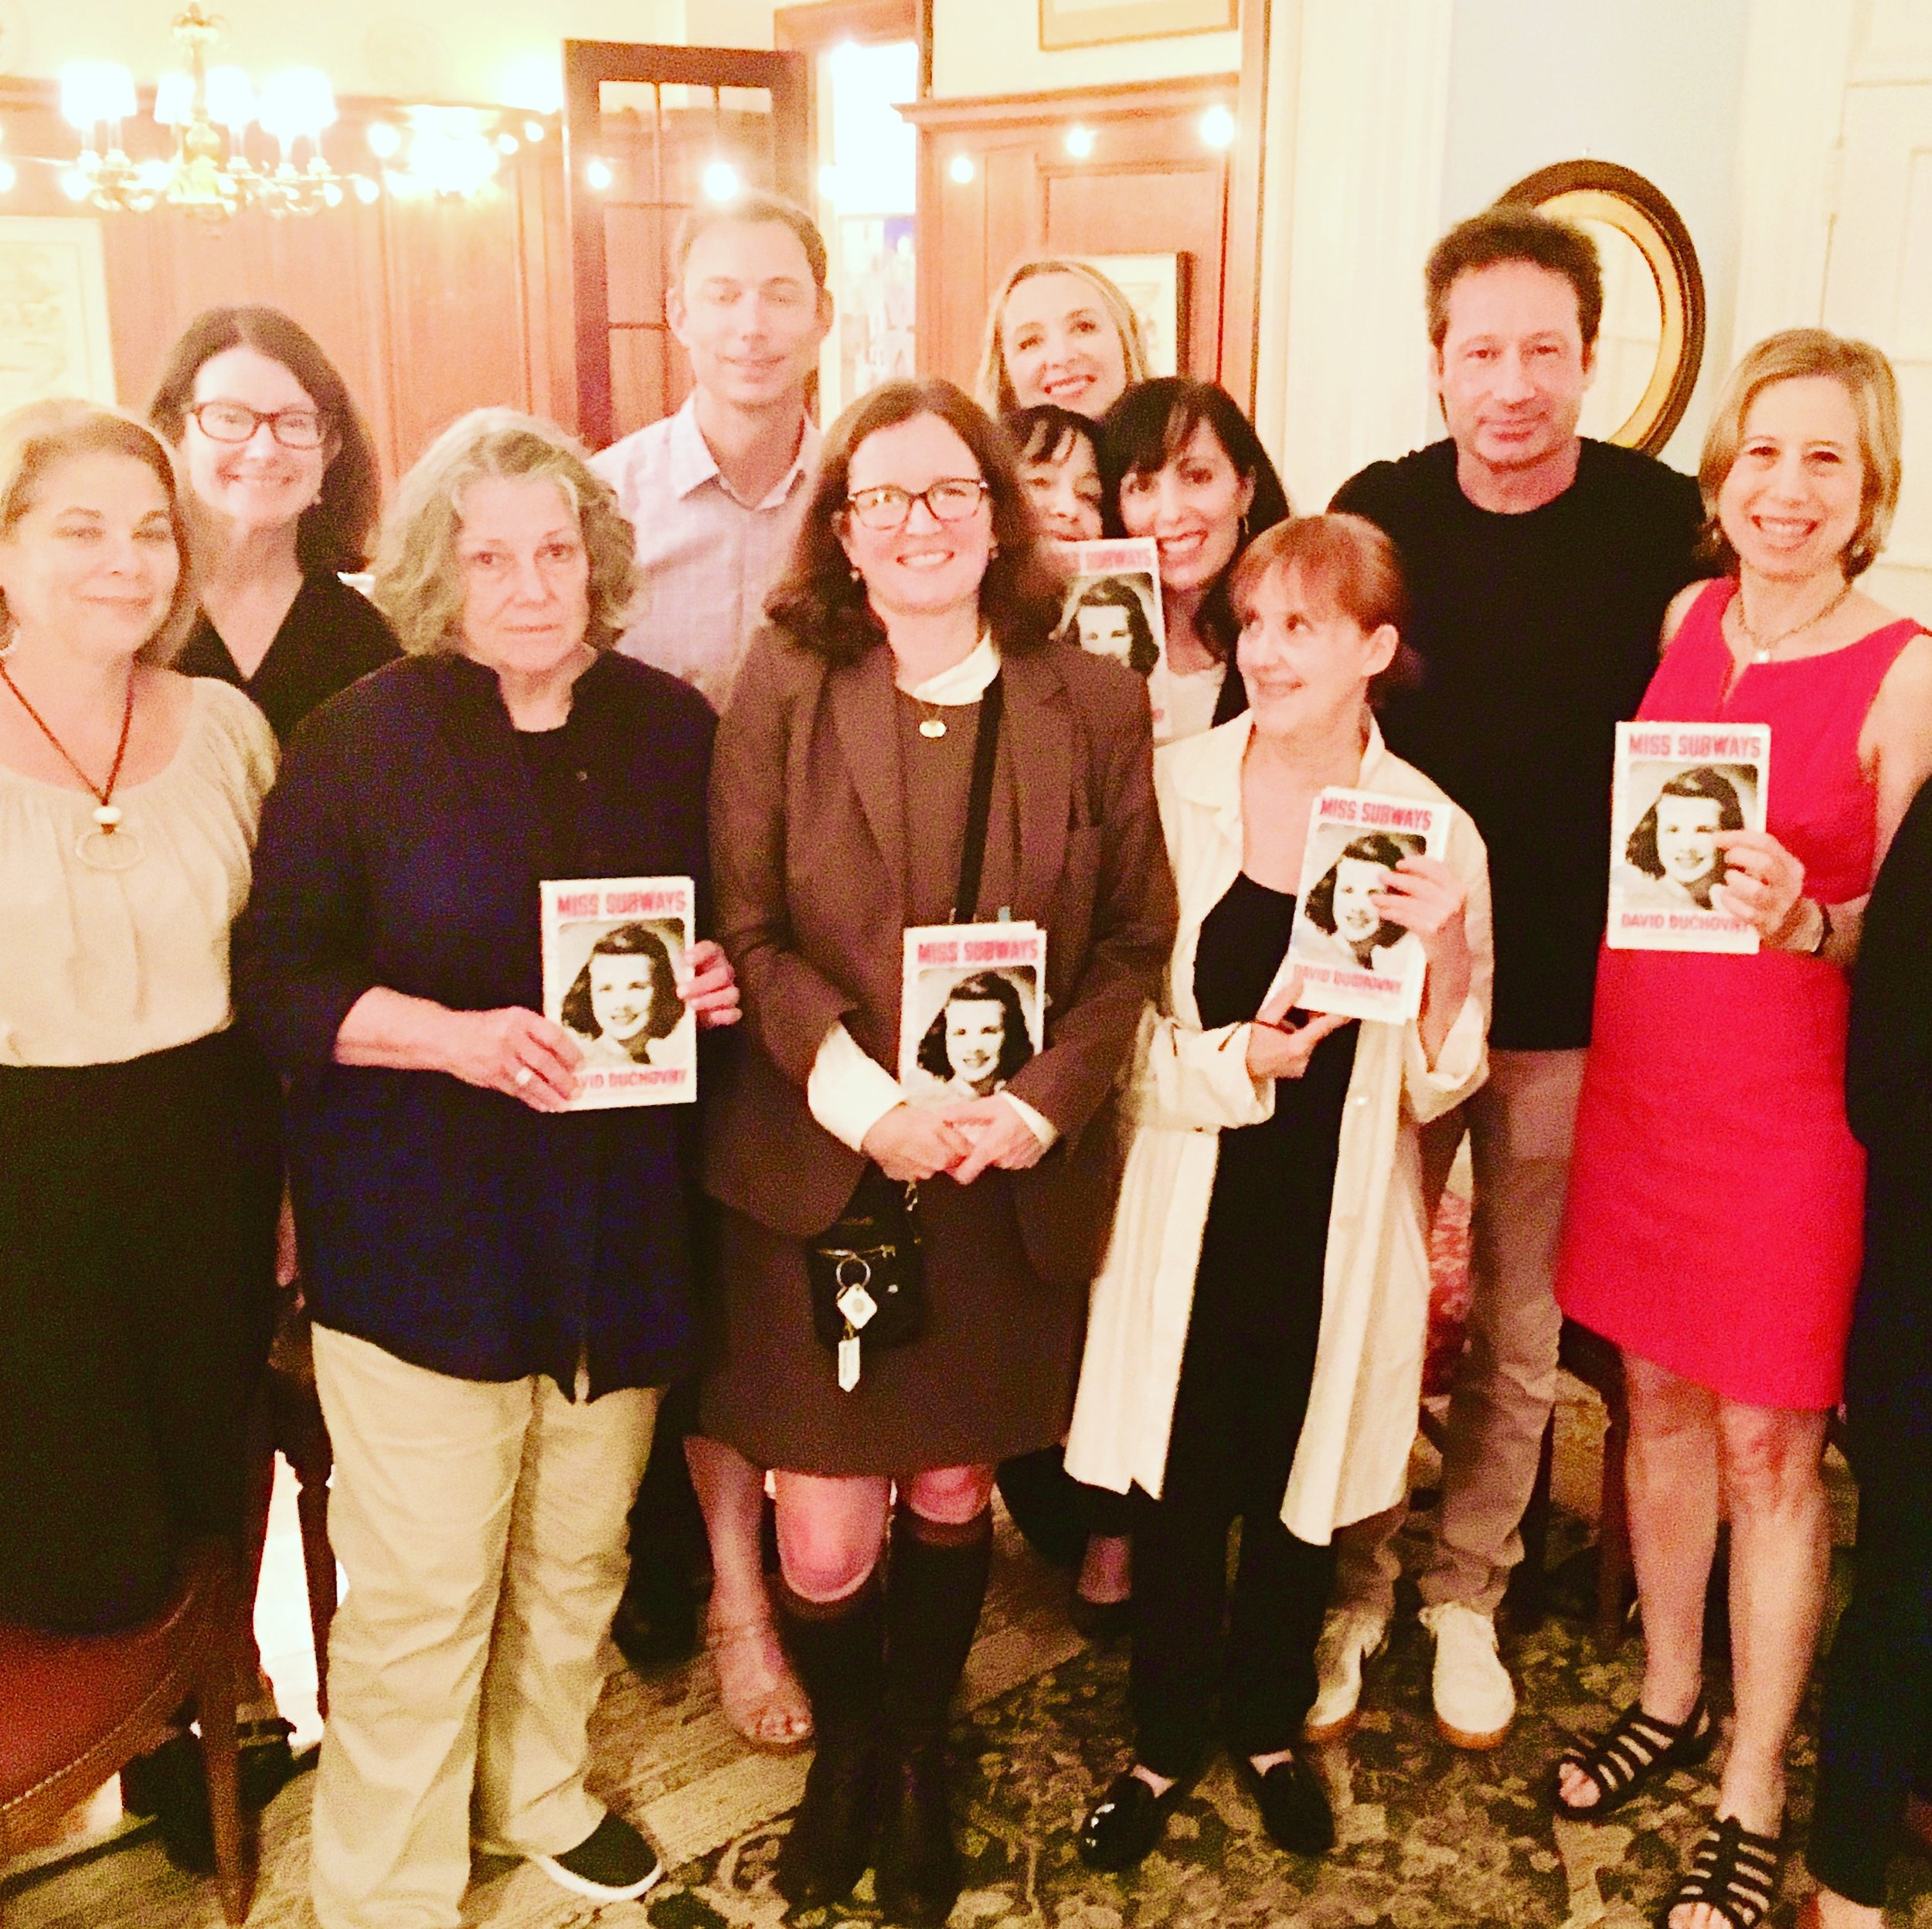 David Duchovny at his Pop-Up Book Group for MISS SUBWAYS.